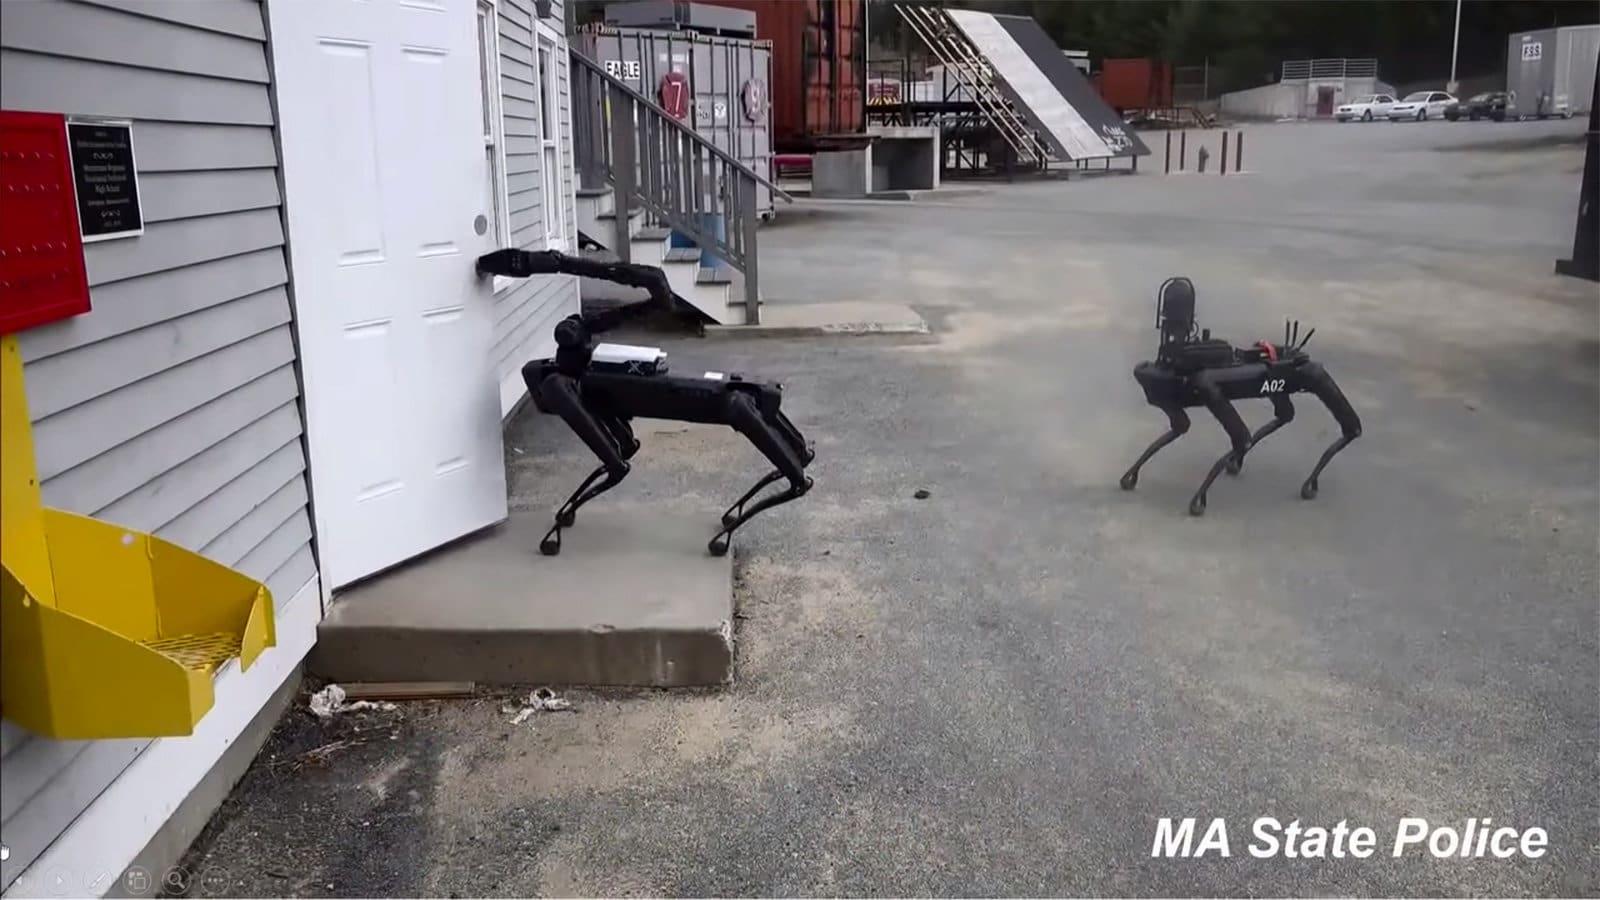 Boston Dynamics/MA State Police/TechCrunch